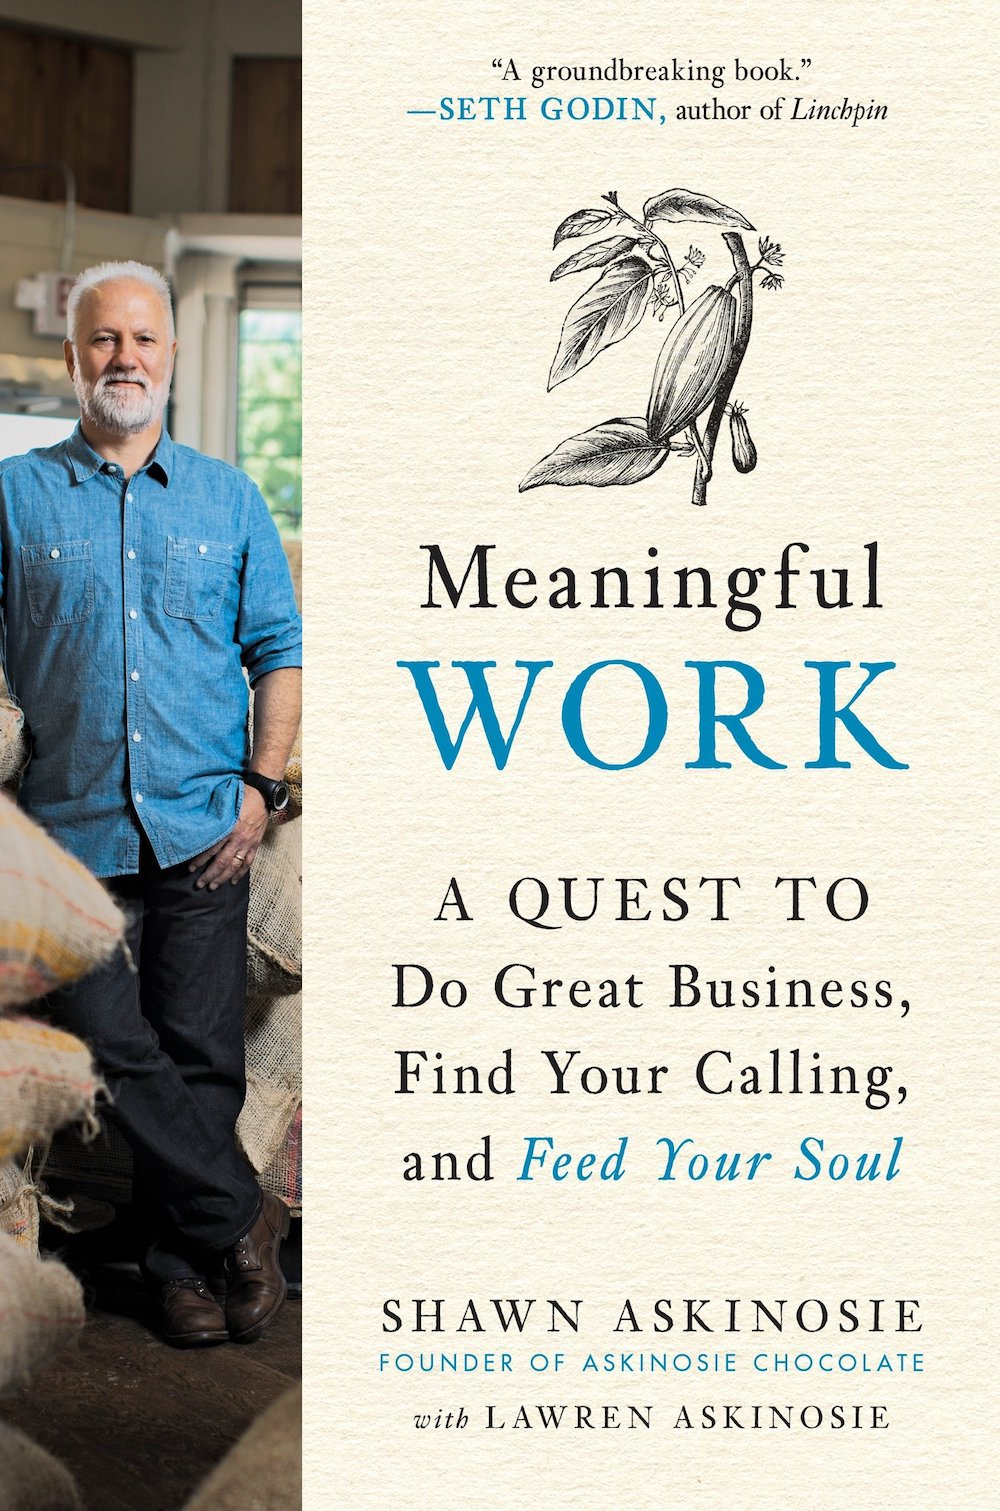 Meaningful Work- A Quest to Do Great Business, Find Your Calling, and Feed Your Soul